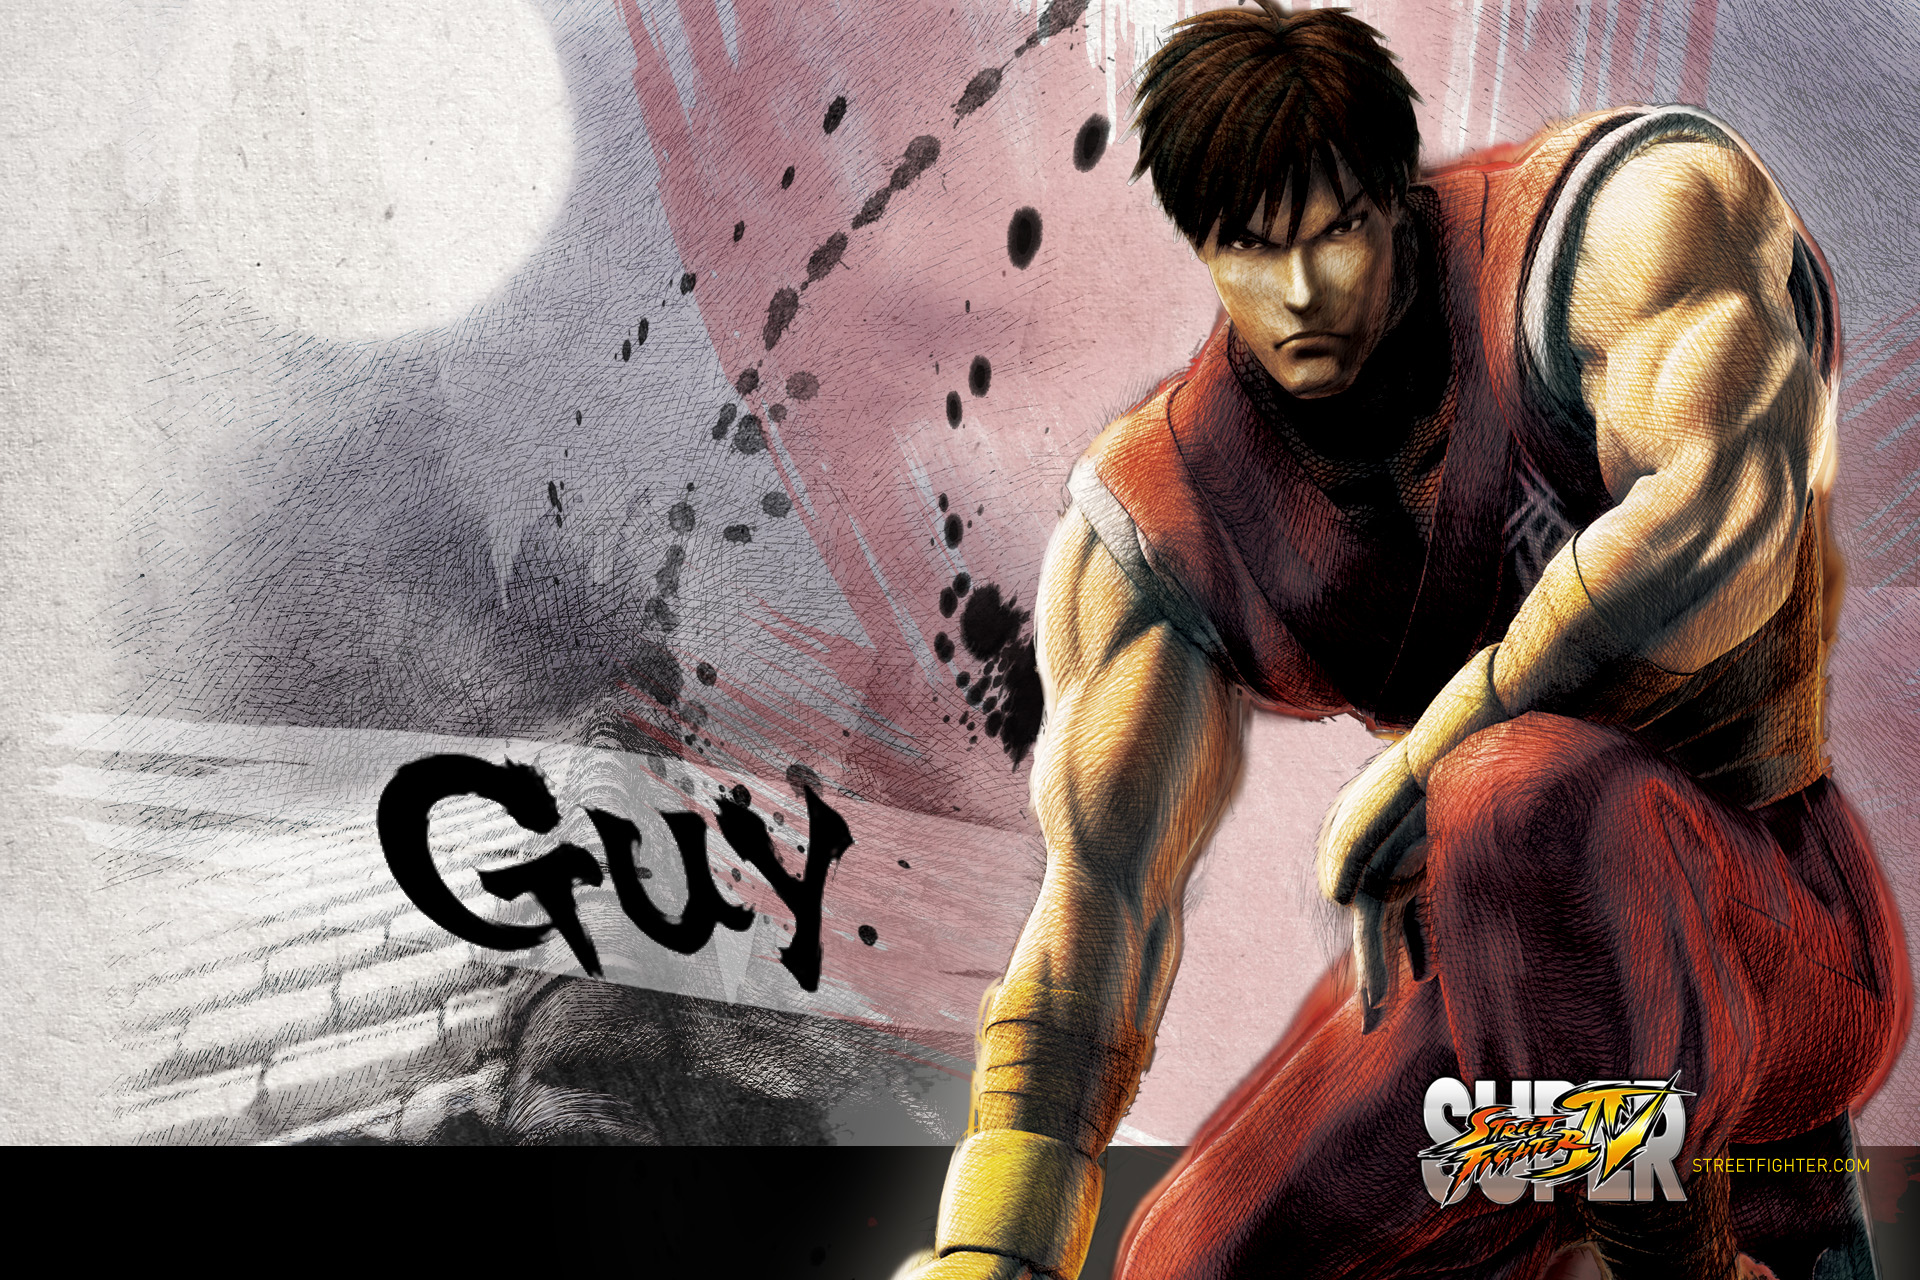 Super Street Fighter 4 Guy Wallpaper   1920x1280 1920x1280